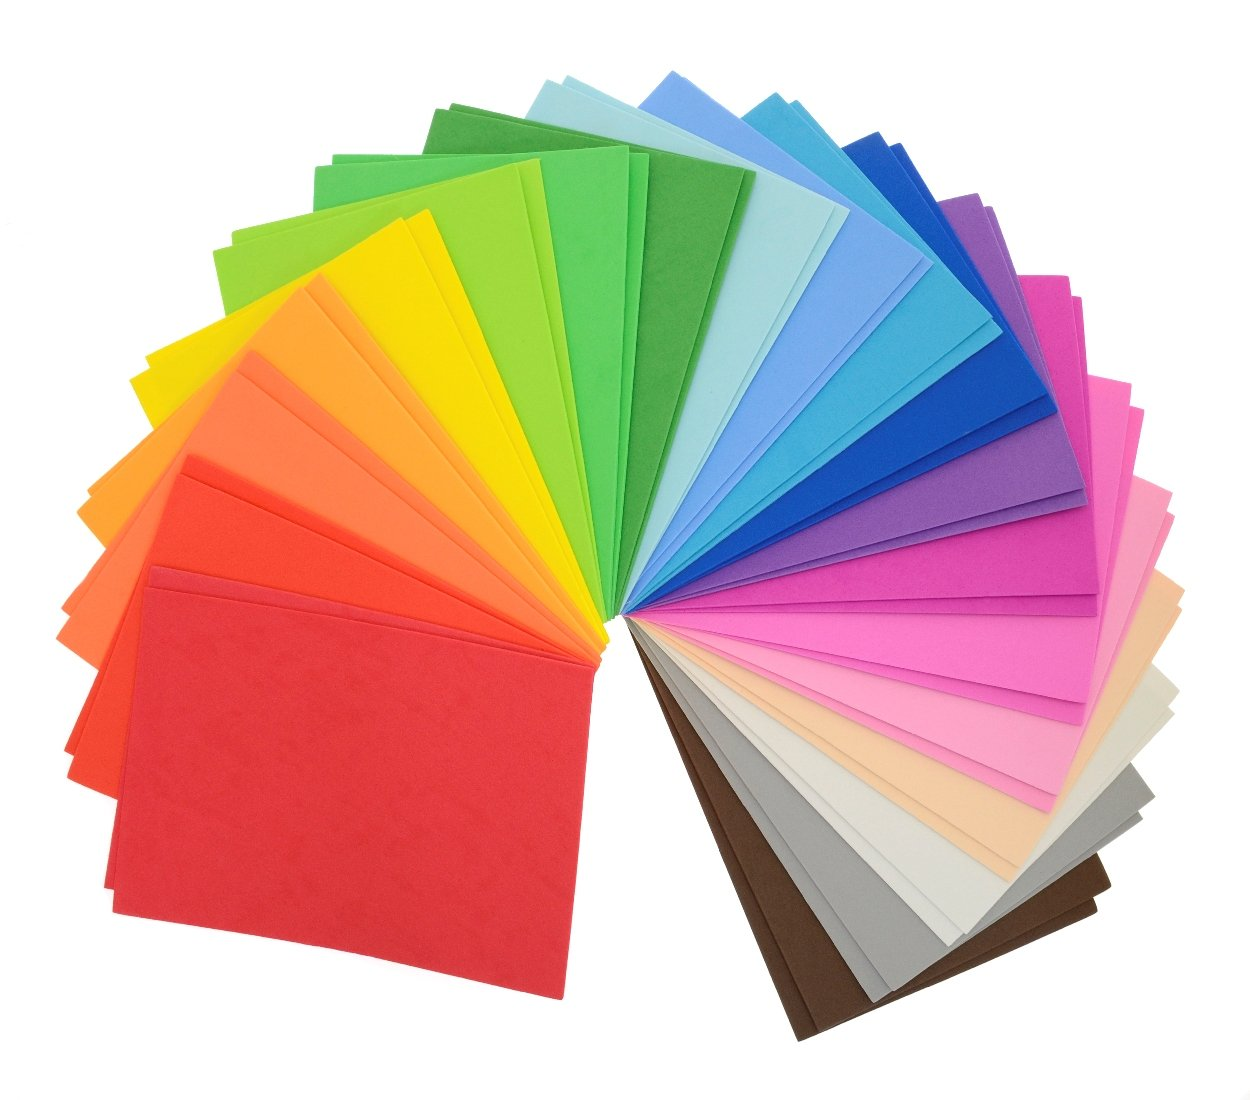 CI Bumper Pack of 40 x A5 Sheets of Eva Foam in Assorted Colours 1860155